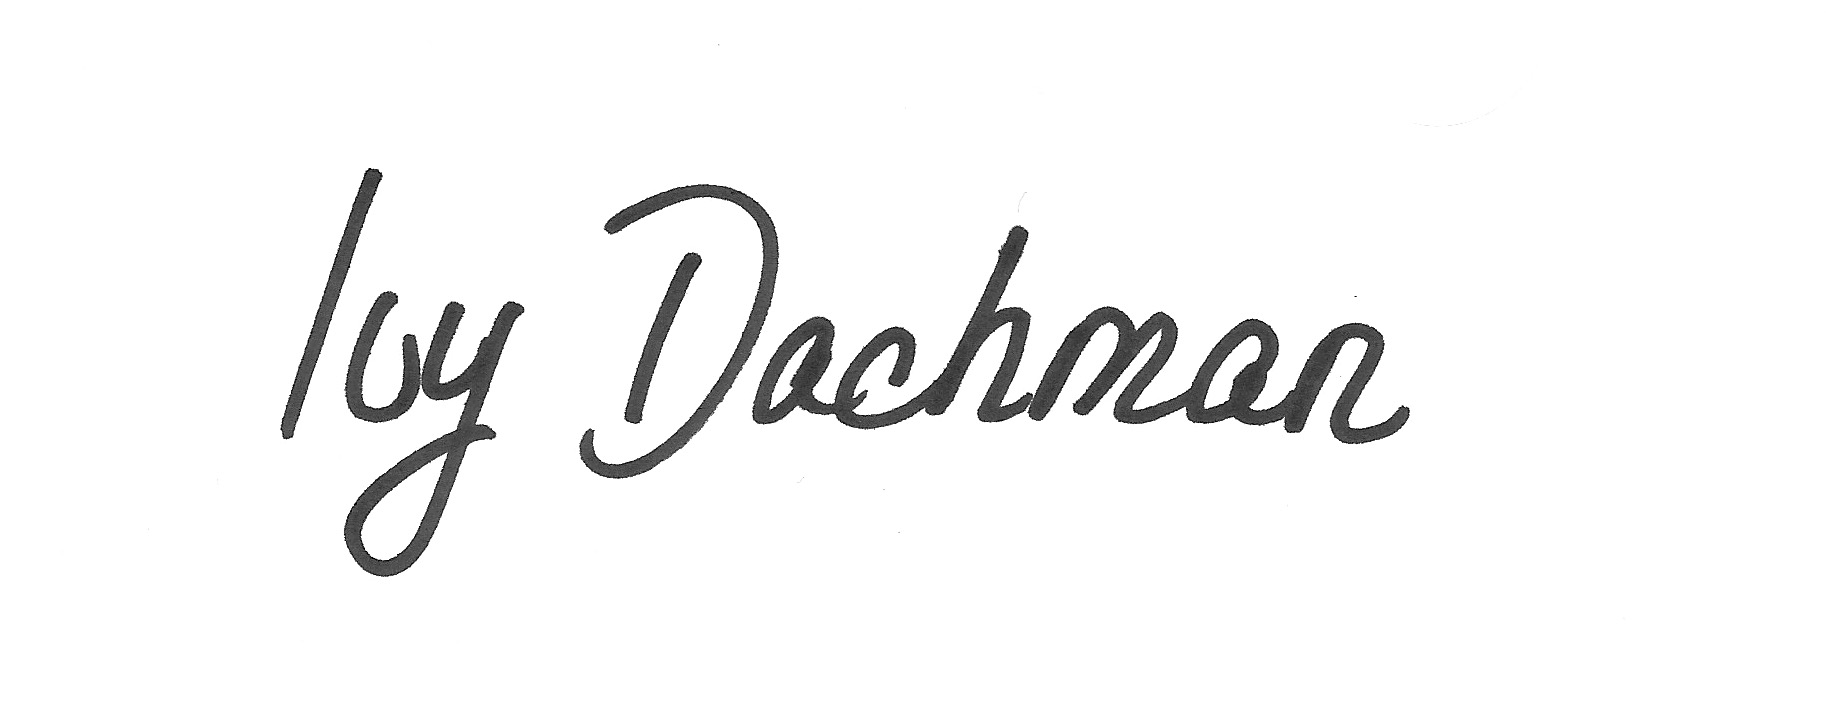 Ivy Dachman's Signature